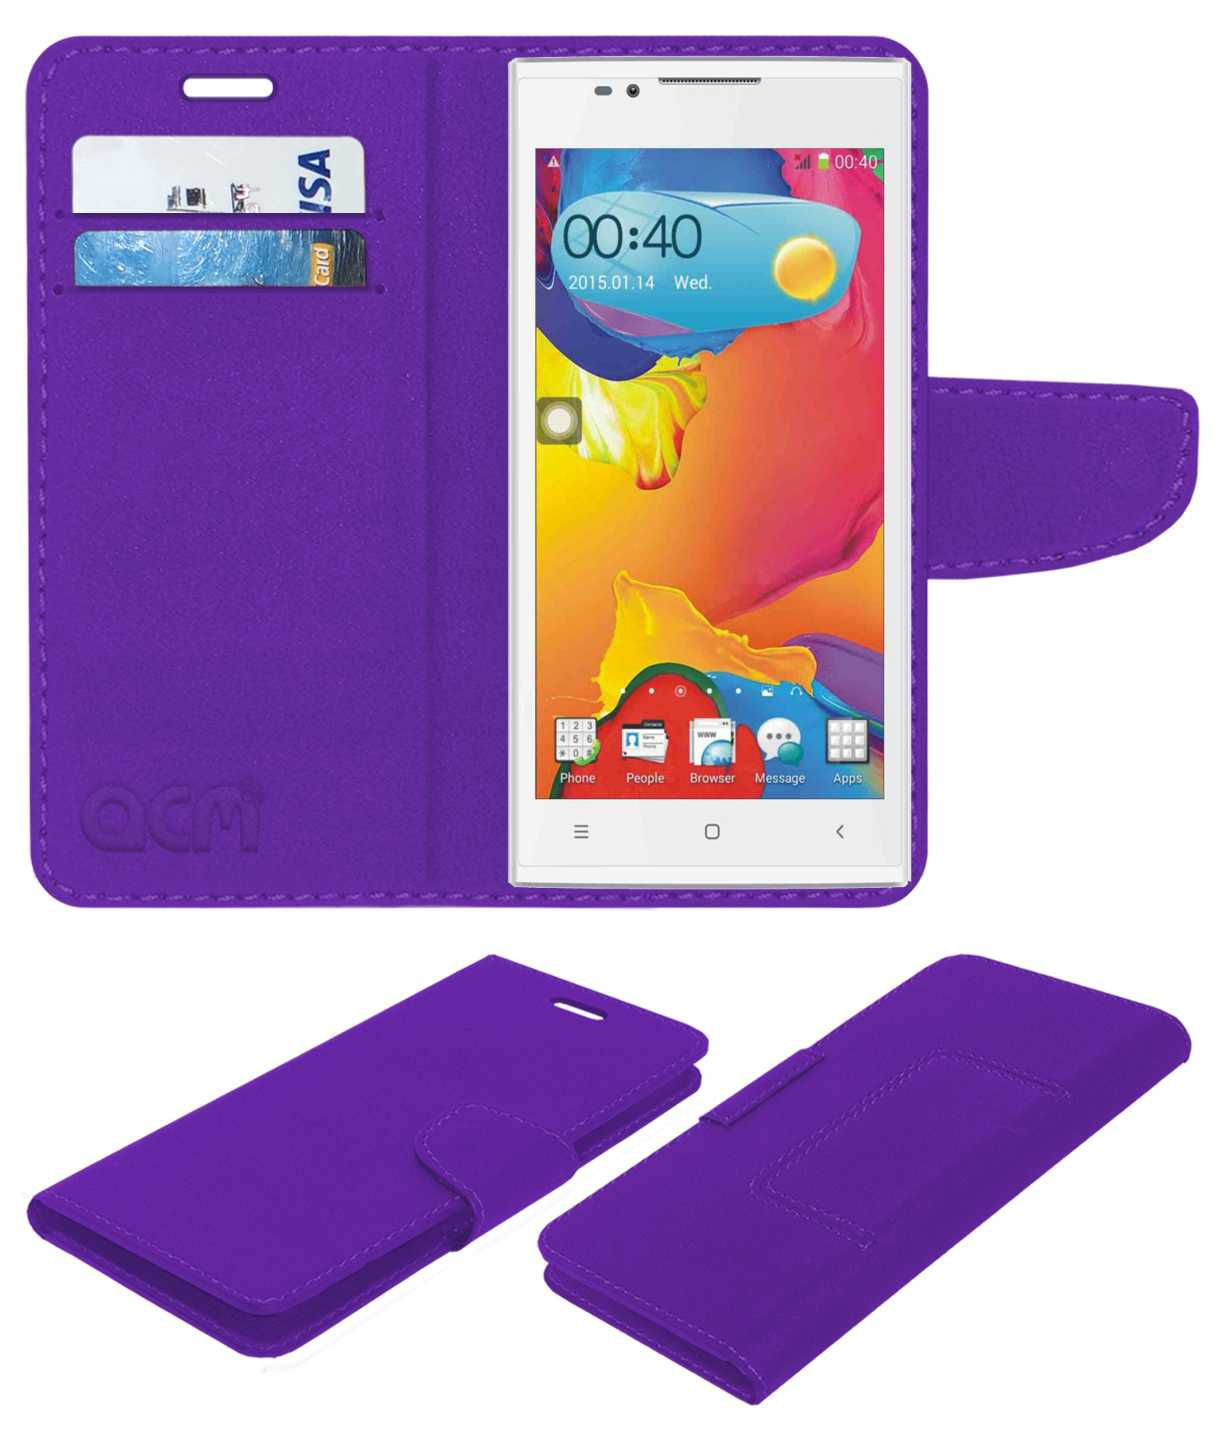 MATRIXX GENIUS G1 Flip Cover by ACM - Purple